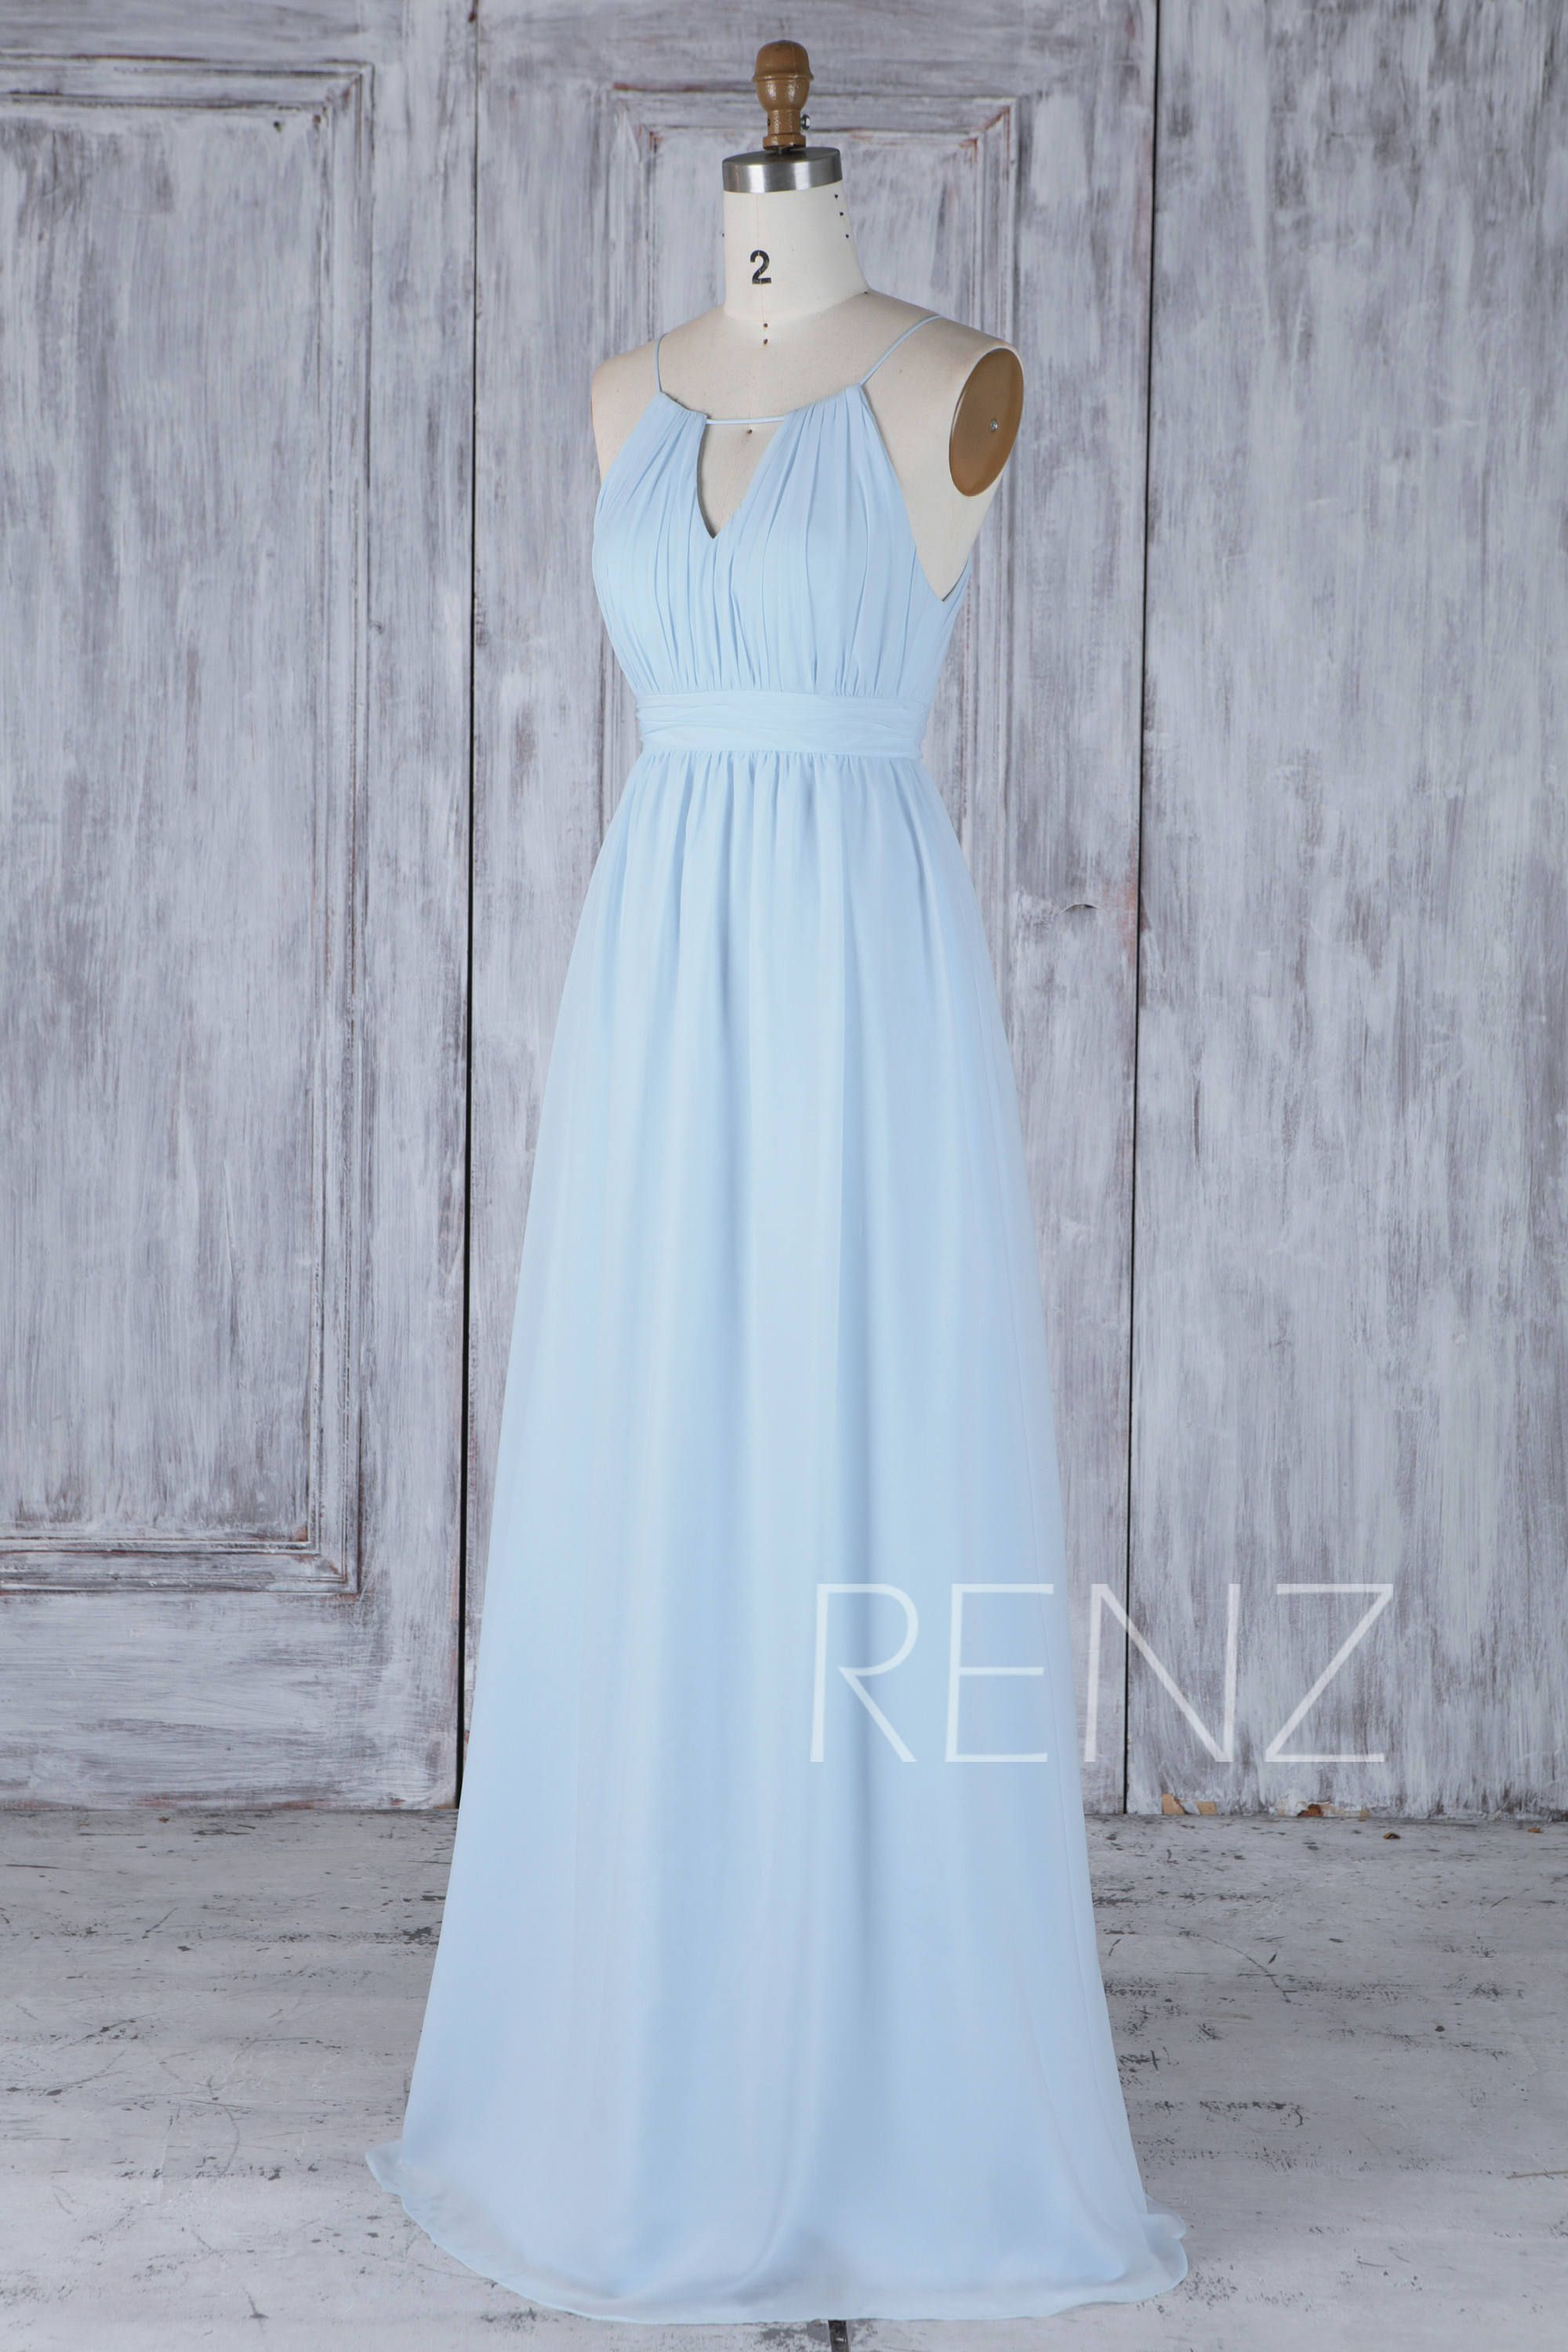 wedding bridal db davids ideas studio by baby least bridesmaid why dress fall your light at once dresses lighting blue in must photos brides experience you lifetime